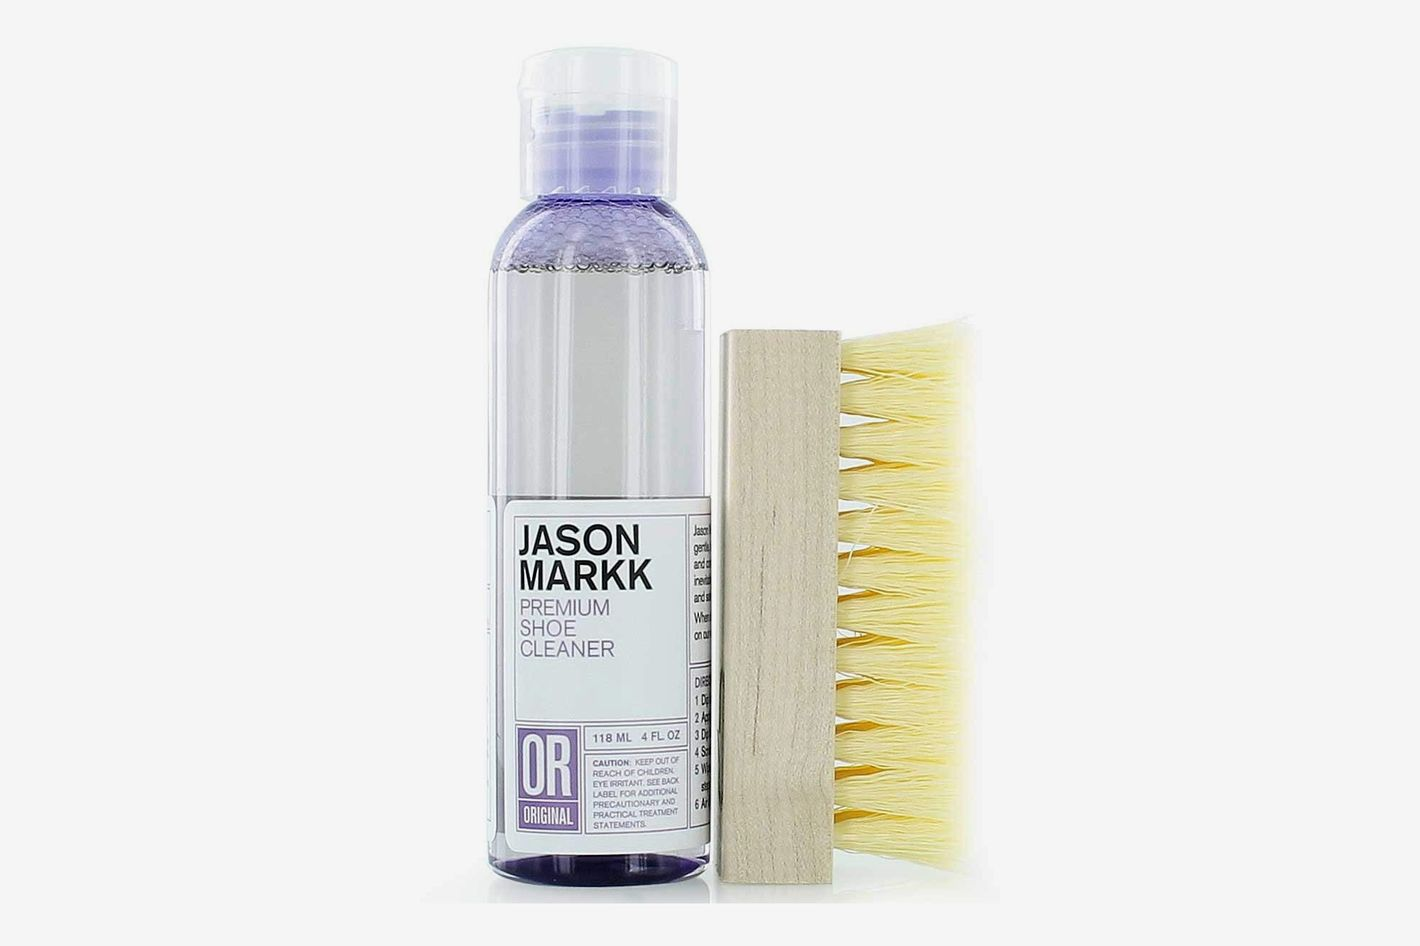 Jason Markk Premium Shoe Cleaner Brush Solution Kits